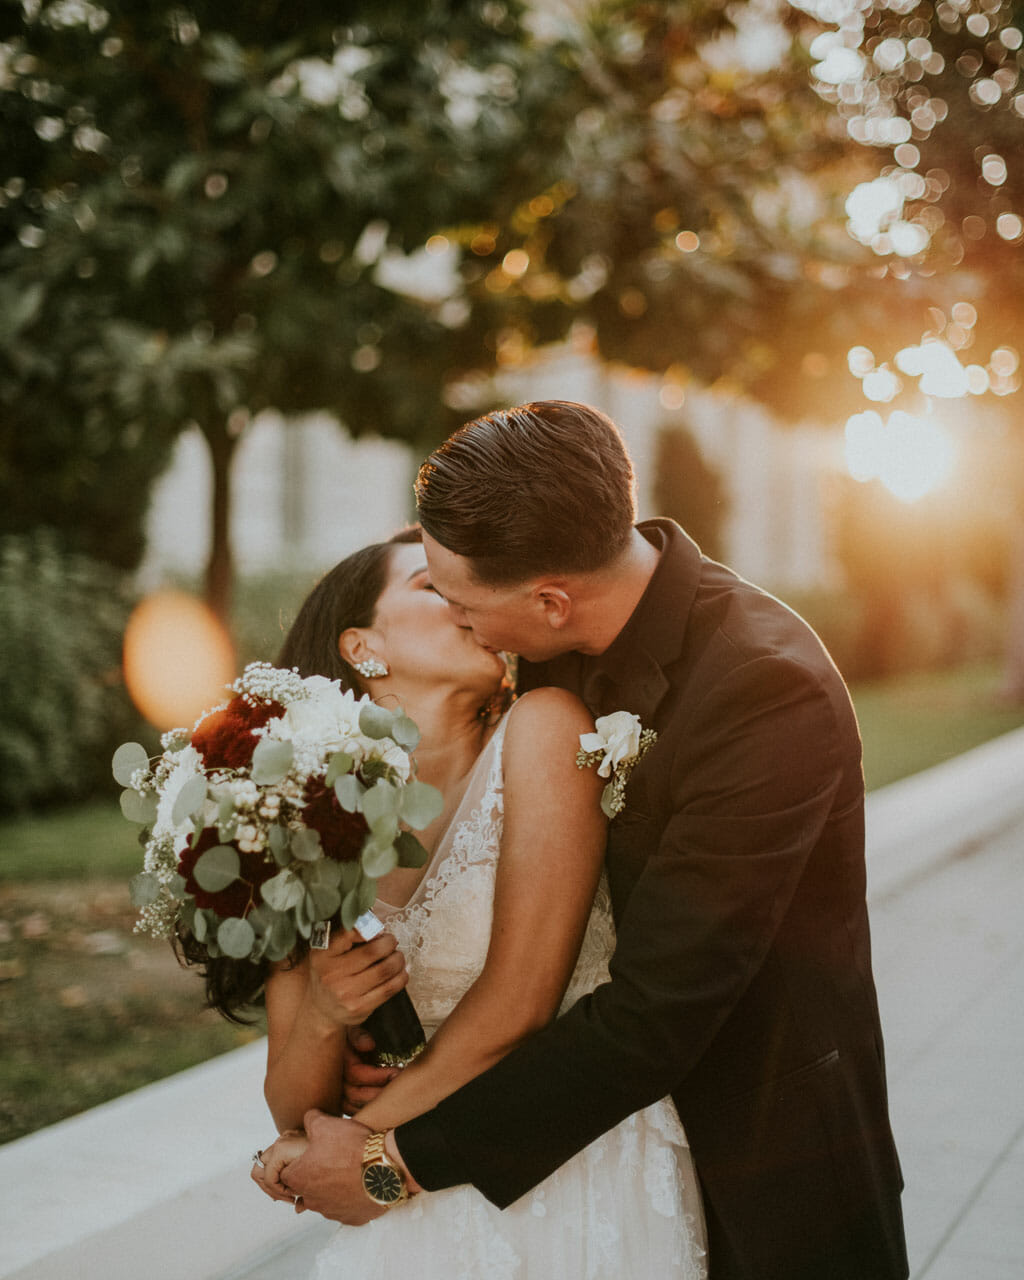 wedding couple with bouquet kissing in golden hour light near noor banquet halls pasadena